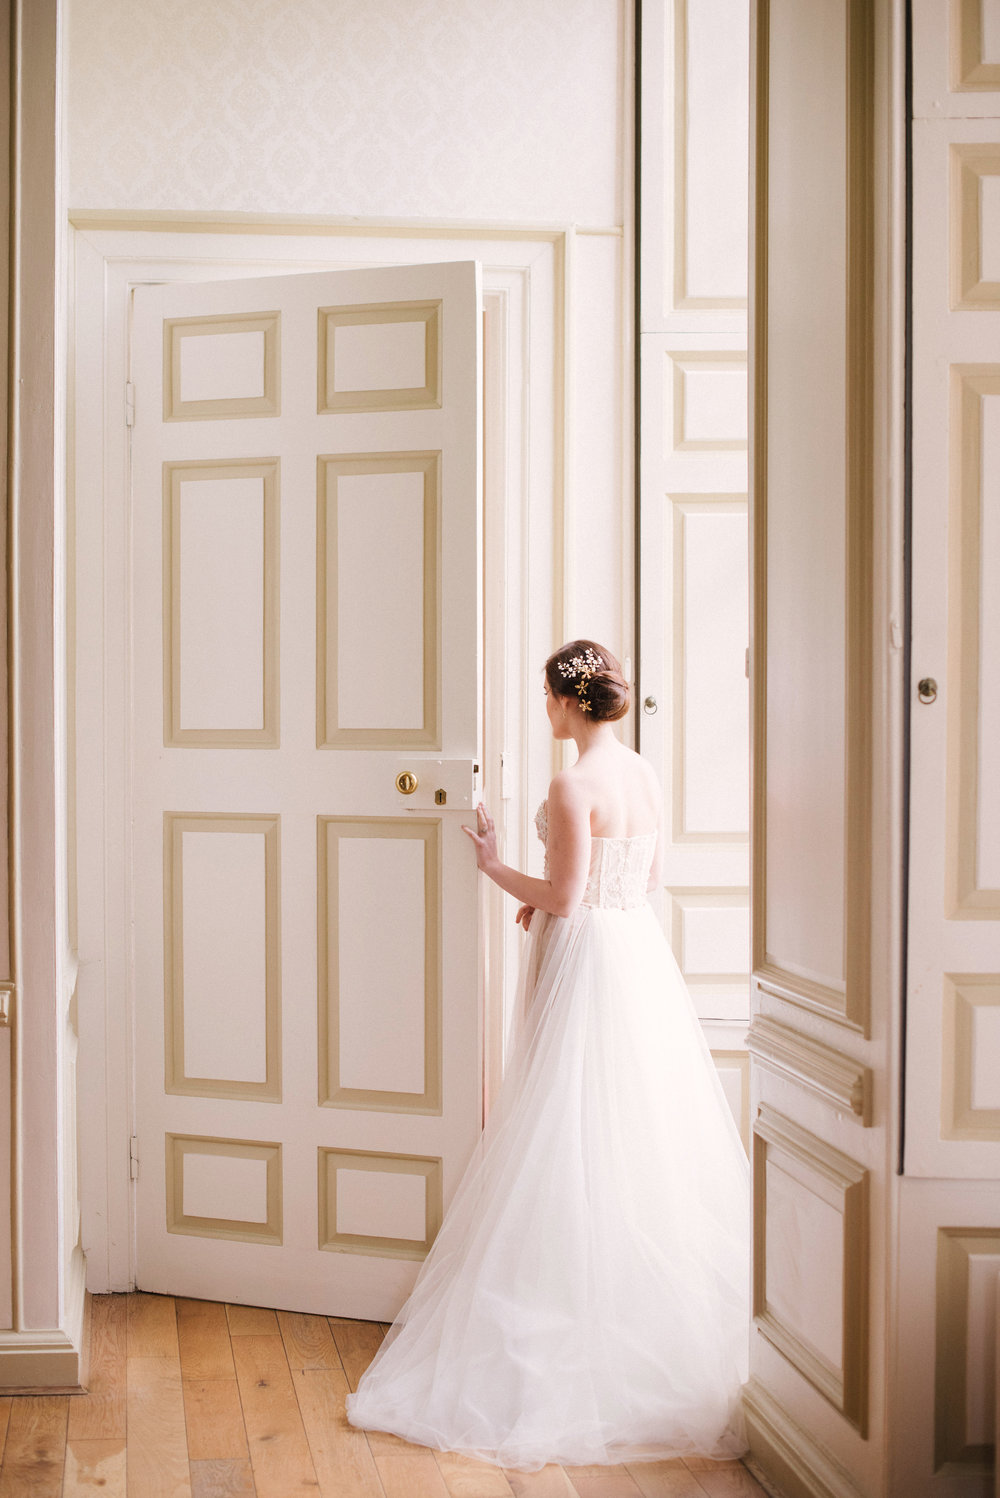 The Timeless Stylist-Elegant and Romantic Wedding Styling-Timeless and Fine Art Bride